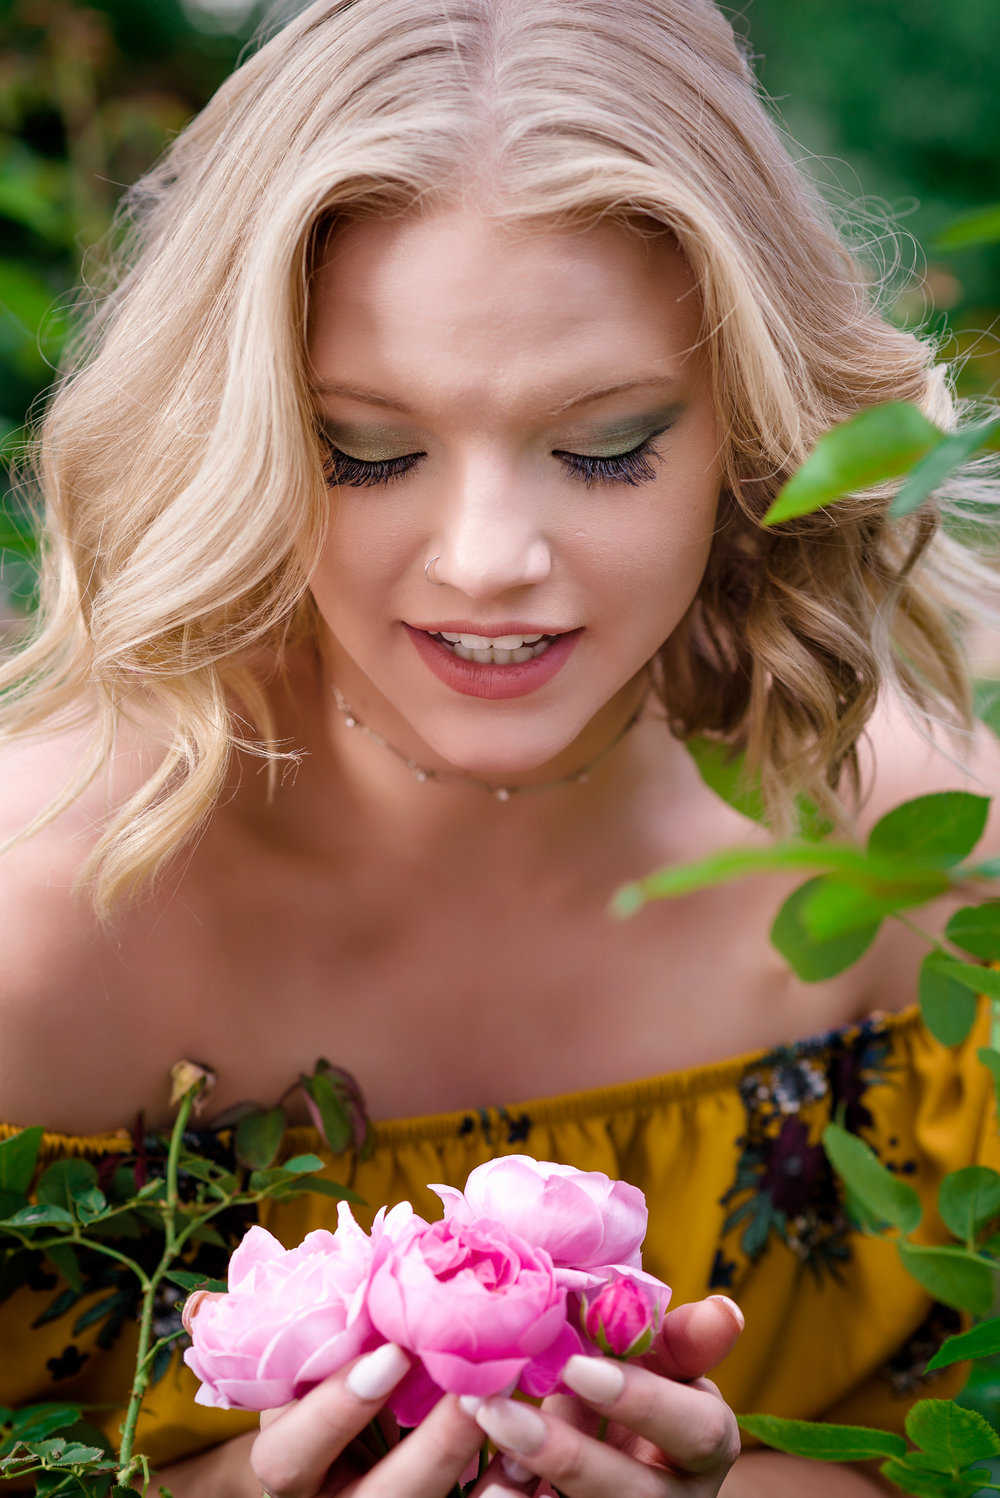 Trinity T, Senior Shoot, 8_20_17, RWF, Lo Res JPEG for Social Media_D6X4590-Edit PC.jpg